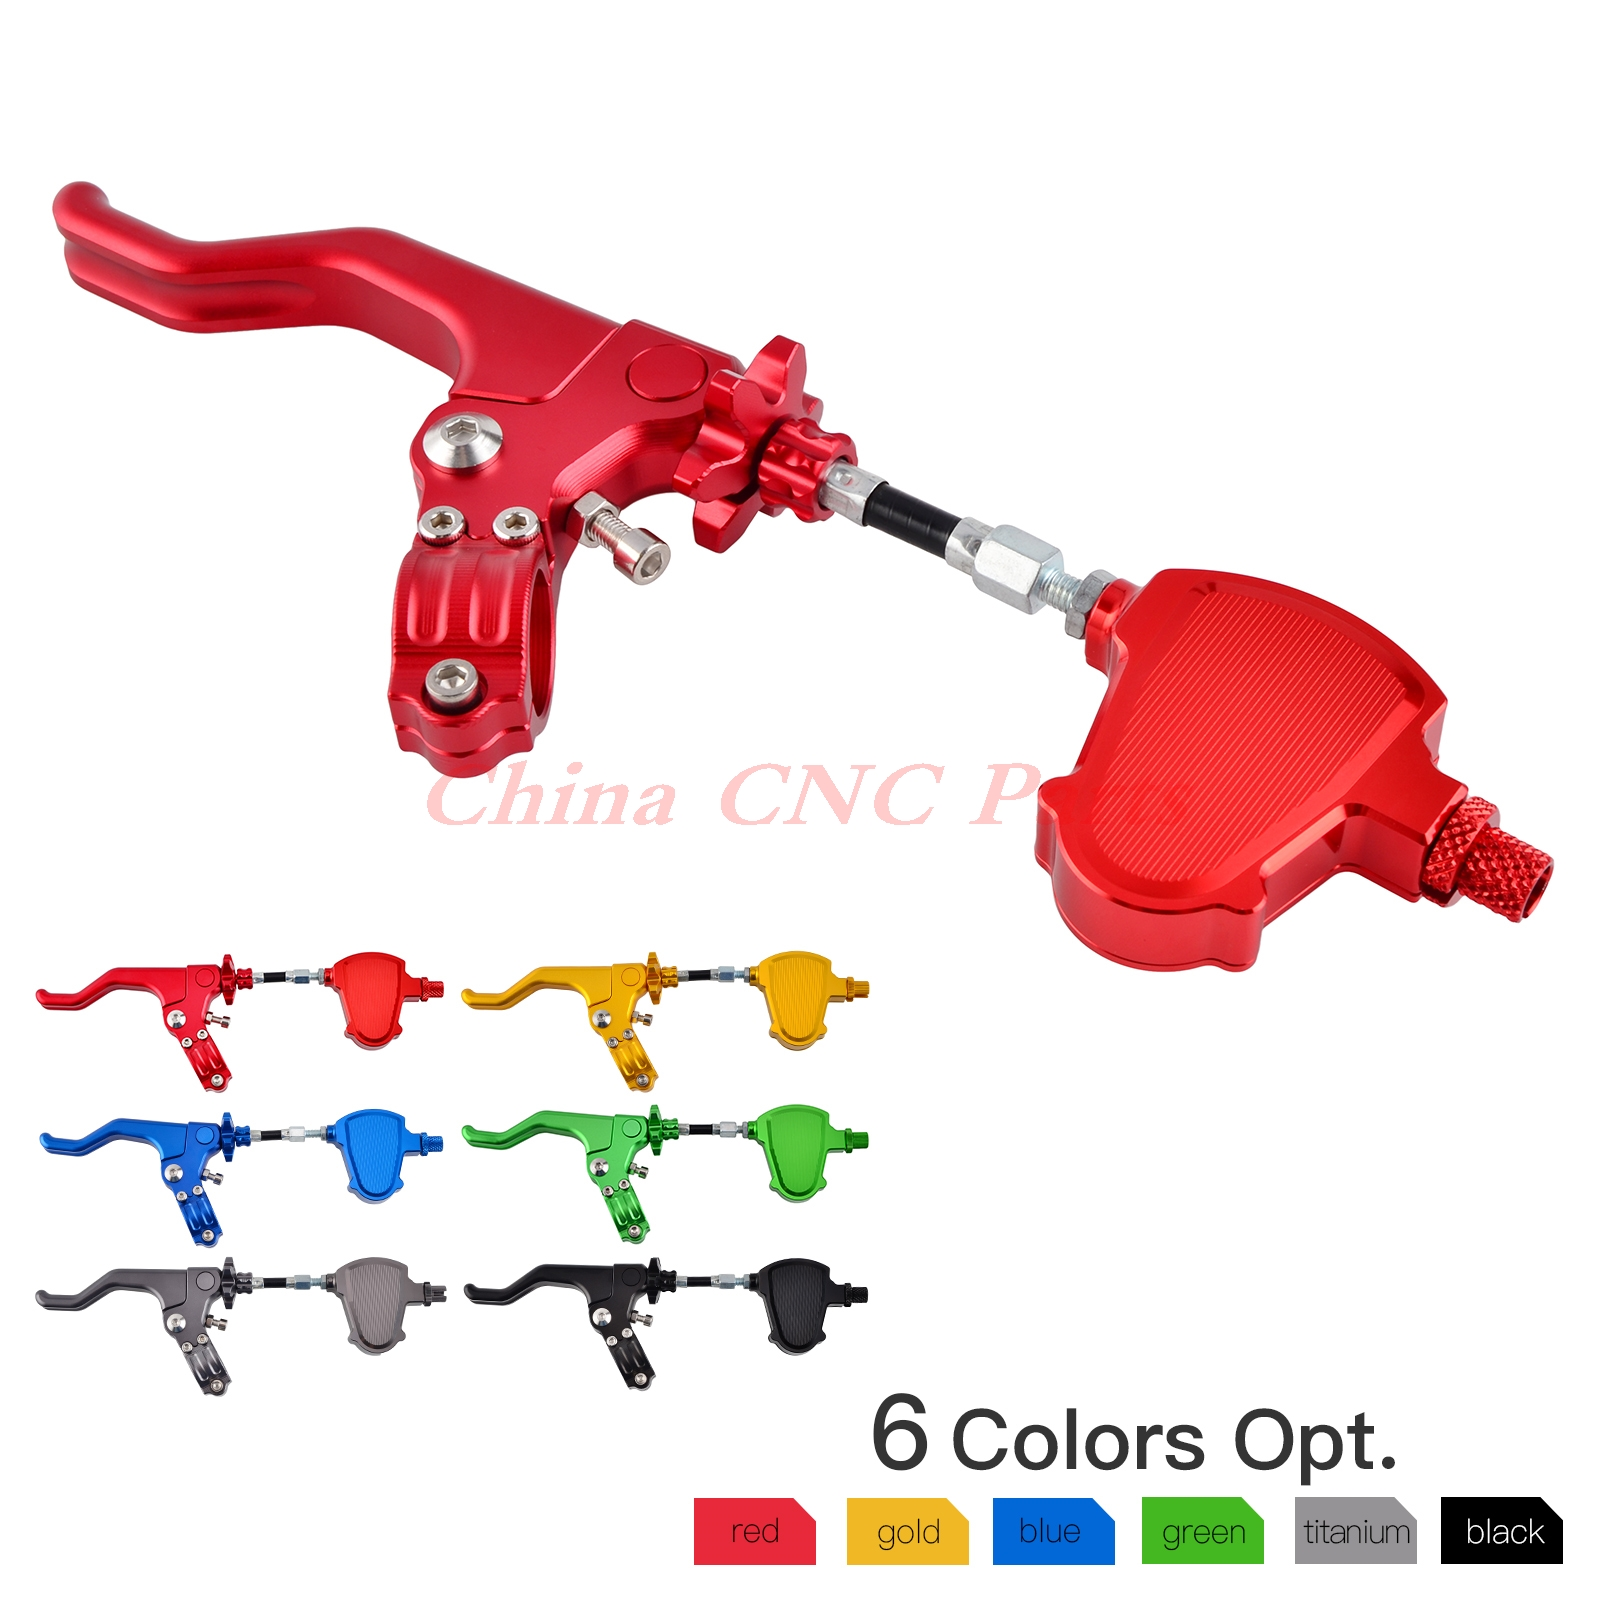 NICECNC Stunt Clutch Pull Cable Lever Replacement Easy System For Honda CRF250R 450R CRF230F 250L/M CBR600RR CB600F NC750 NC700 чернильный картридж hp 130 c8767he black